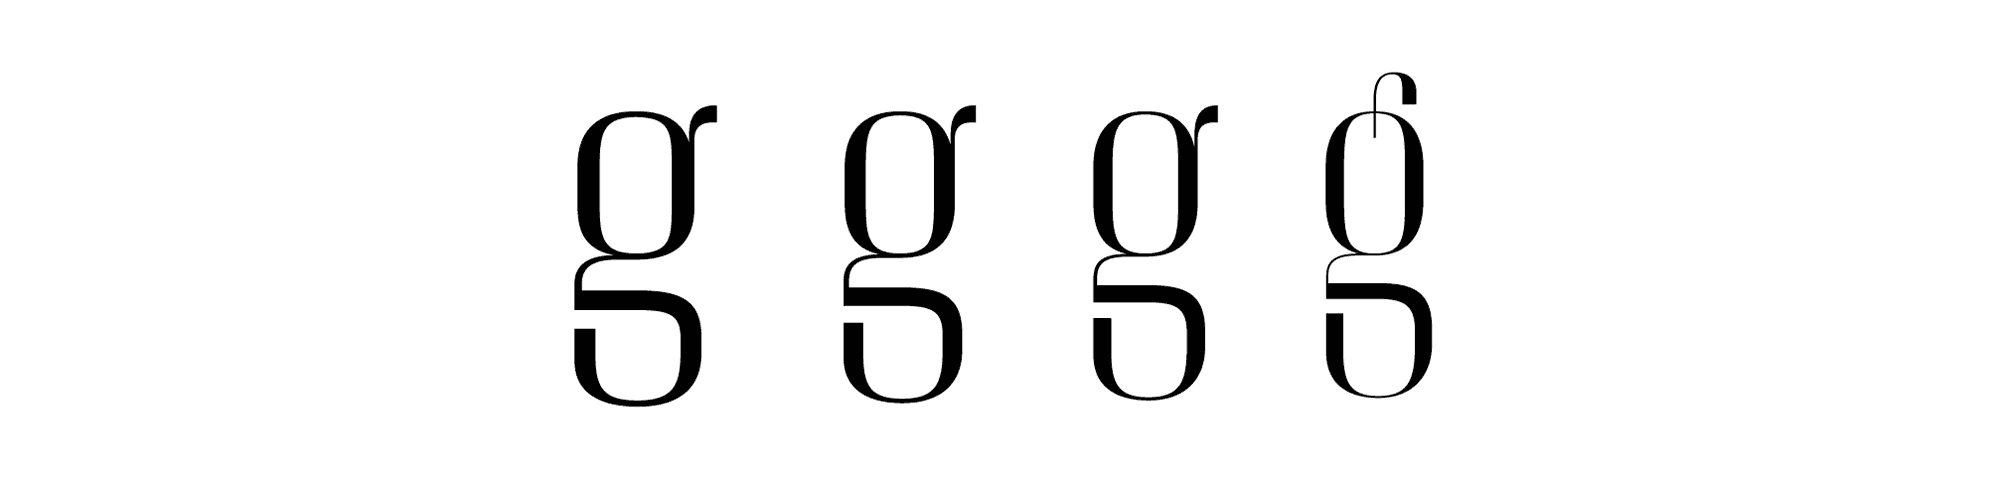 Christian Schwartz's Giorgio; 44. From left to right: Small, Medium, Large and XLarge